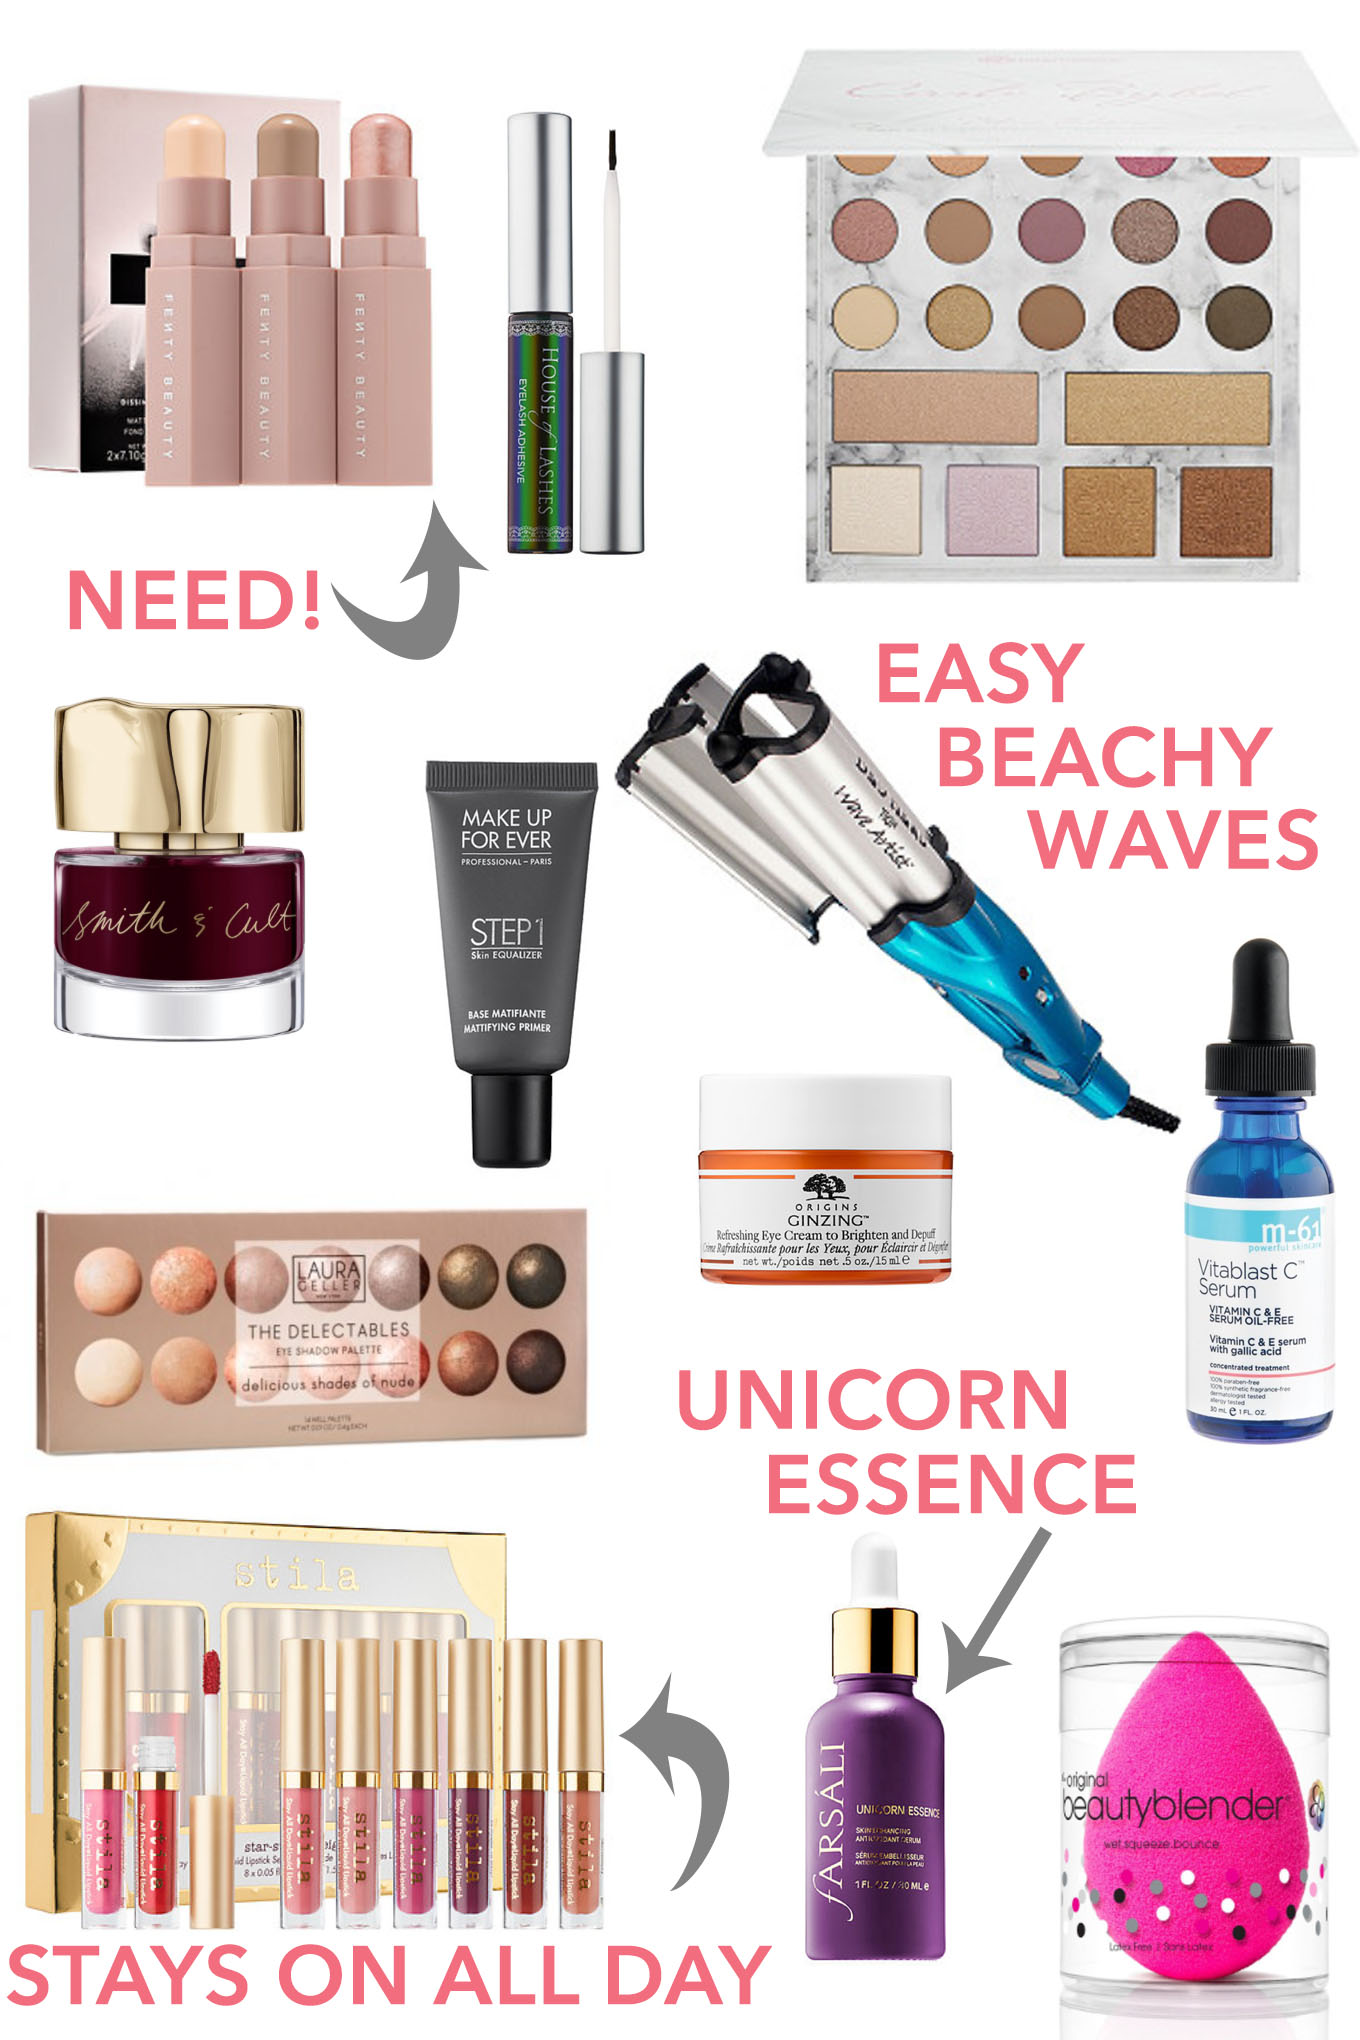 Lifestyle blogger Roxanne of Glass of Glam's Beauty Wish List with TopCashBack